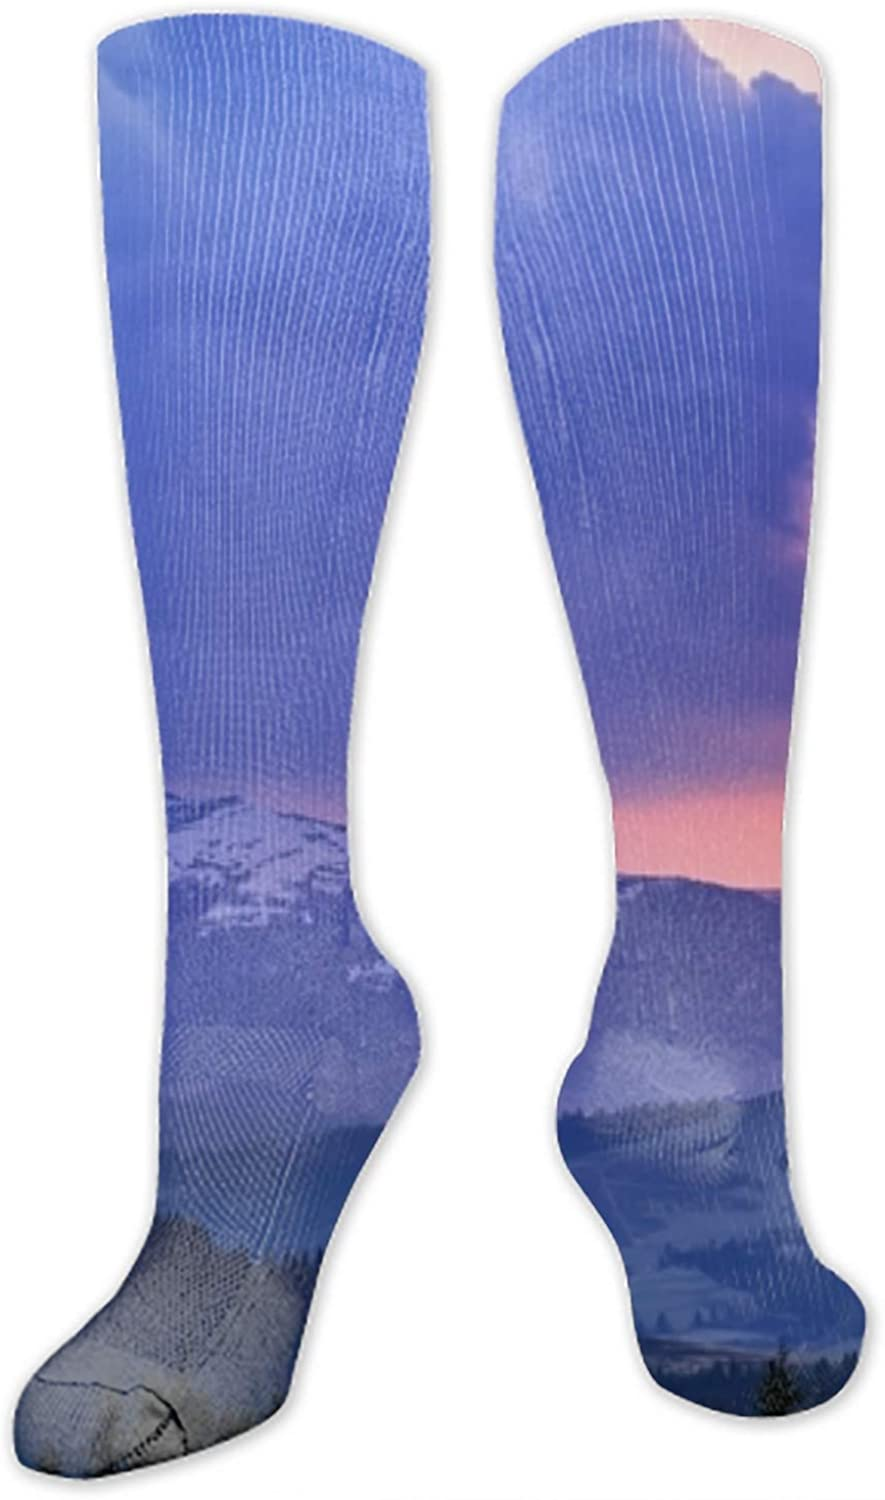 Unisex Art Patterned Casual Crew Socks Mountains Good for Gift Idea